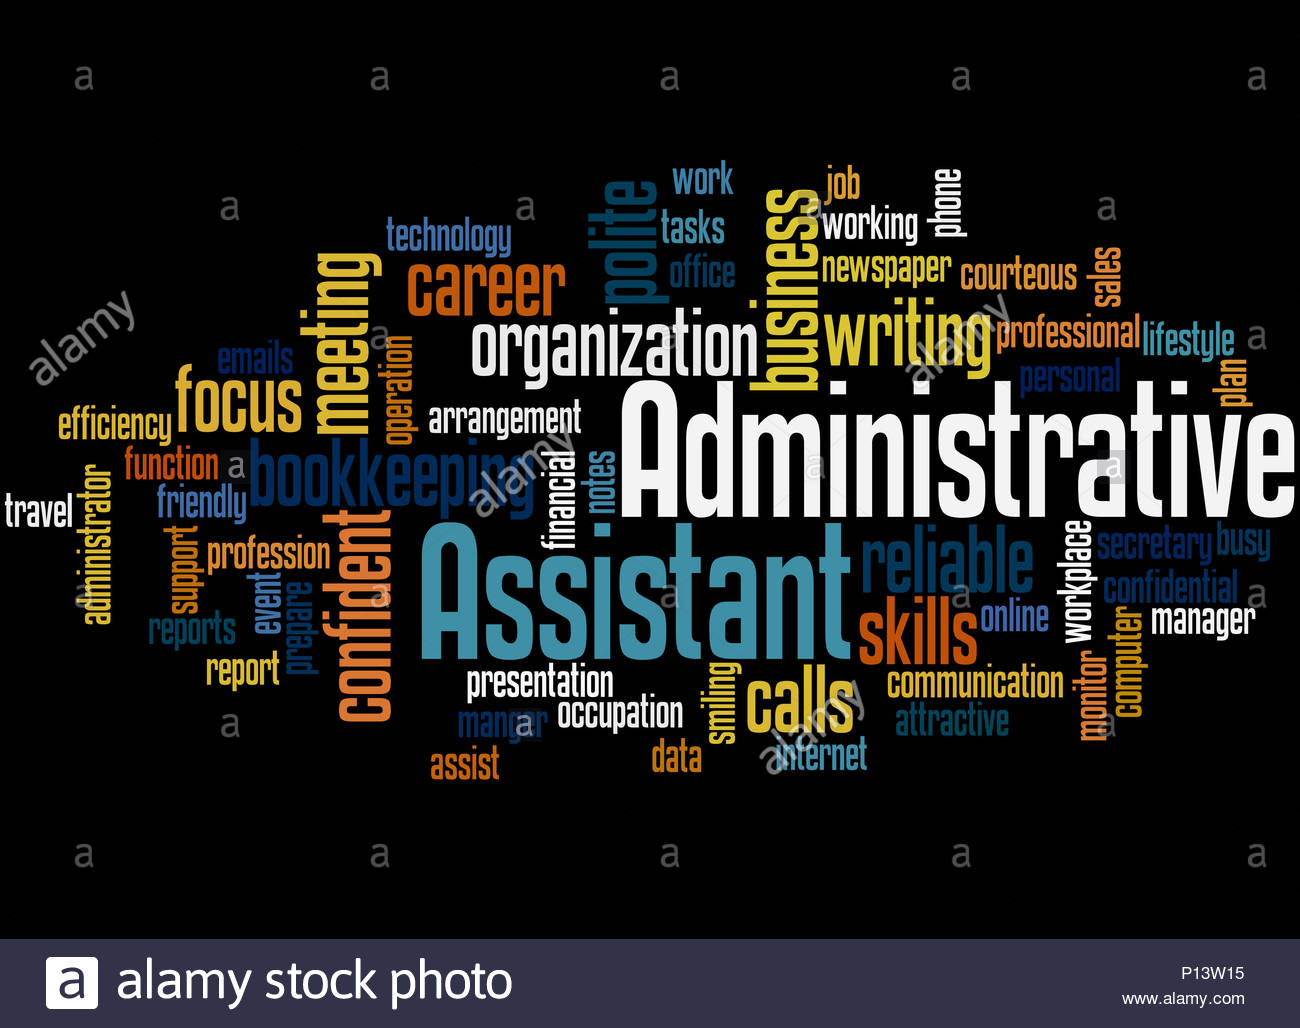 Administrative Assistant word cloud concept on black background 1300x1028